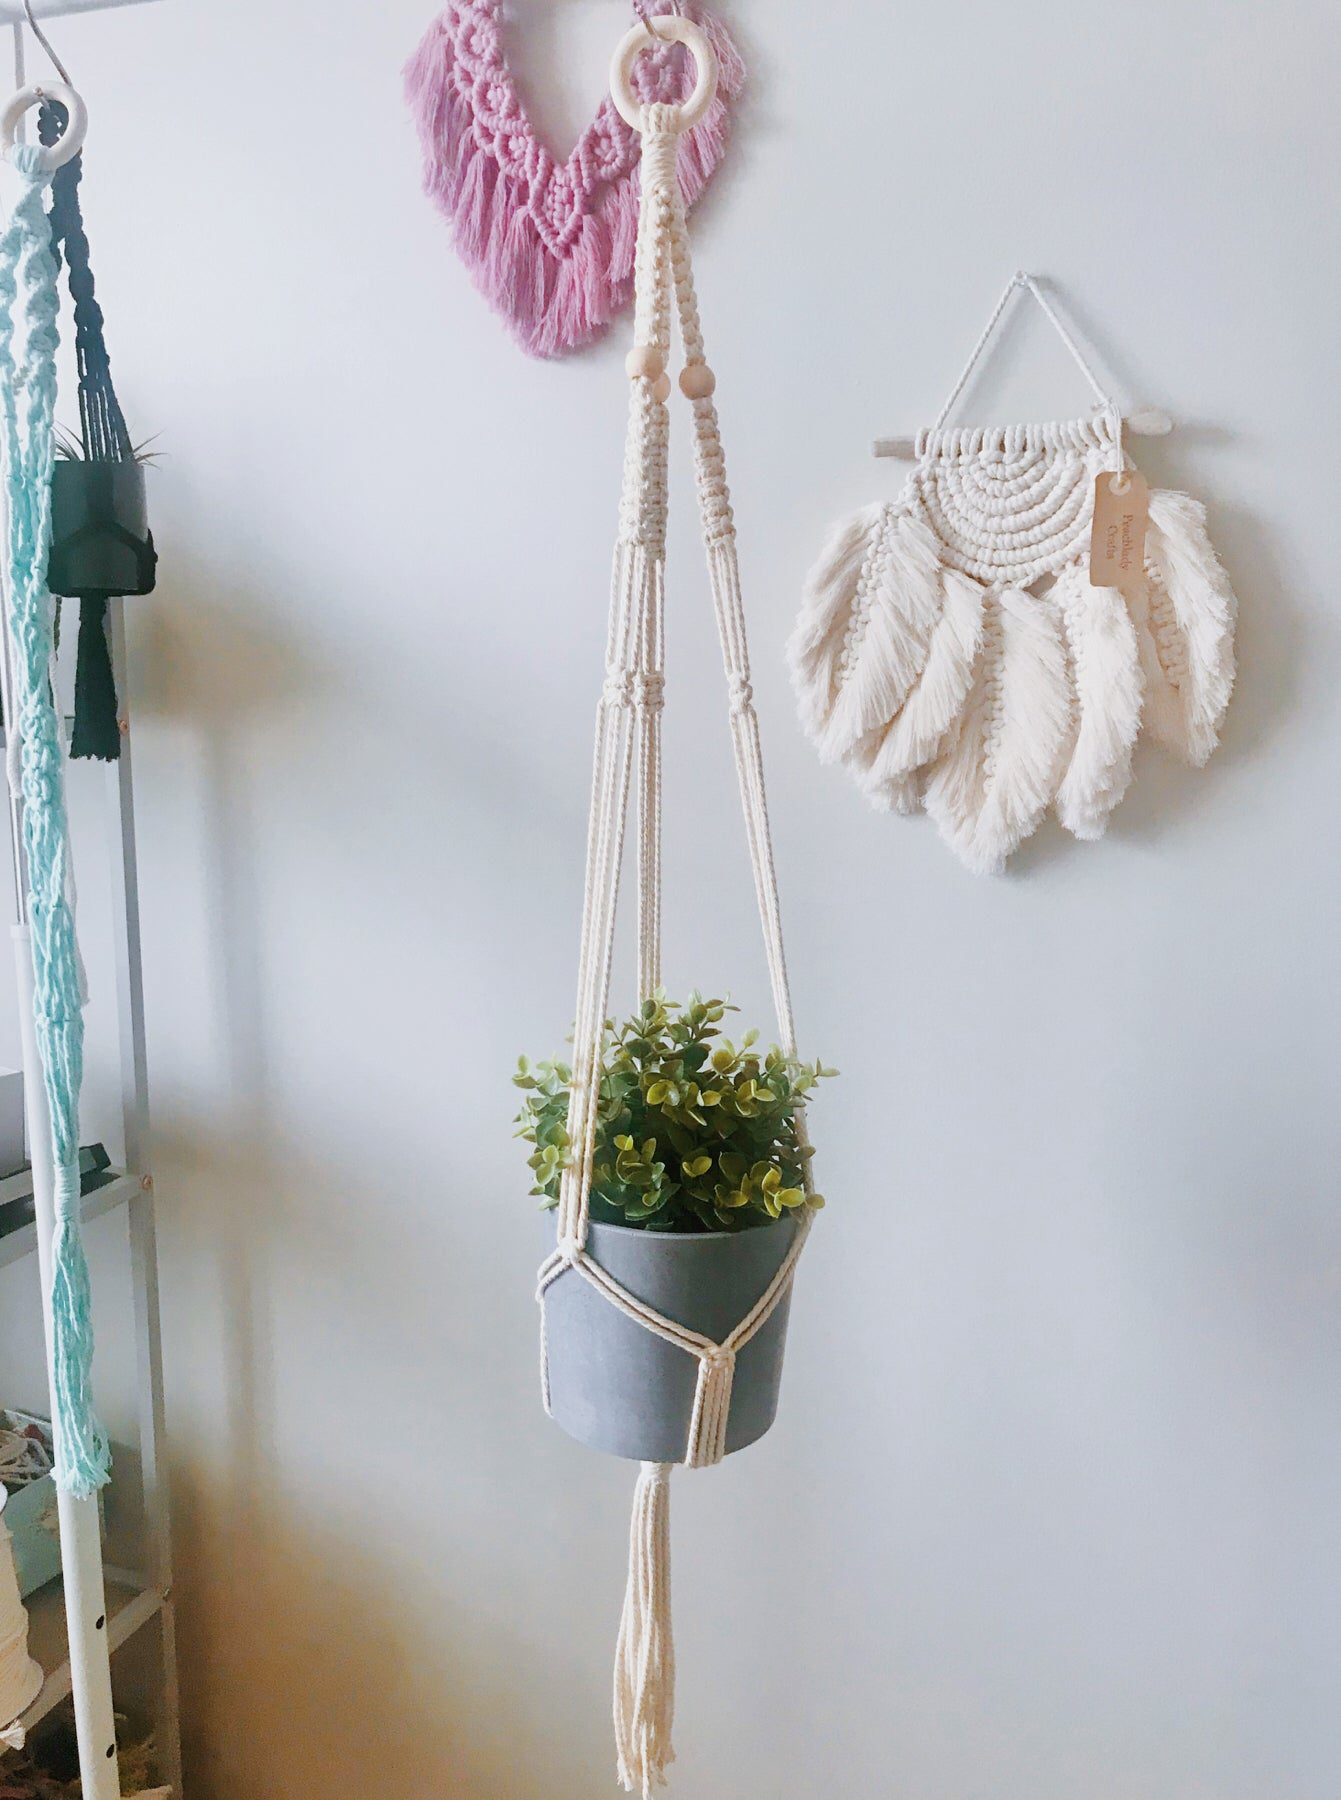 Macrame 3 beads plant hanger DIY Kit